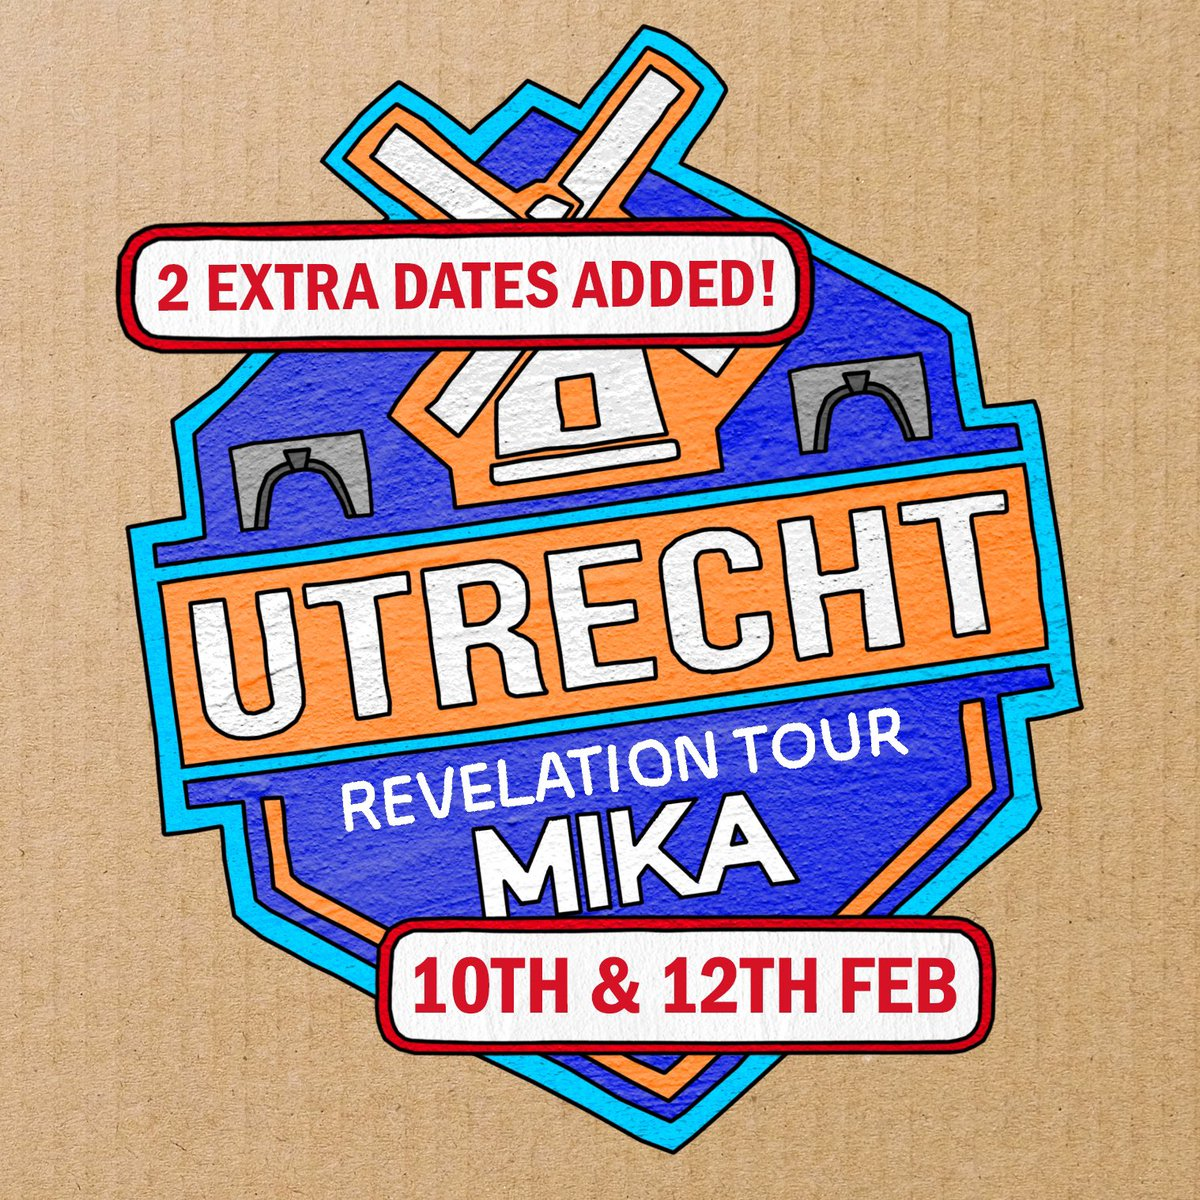 Utrecht! You sold out our date in the Netherlands so quickly that we decided to add another two shows! Tickets are on sale now at  http:// mikasounds.com    <br>http://pic.twitter.com/y7D5KFgD2h